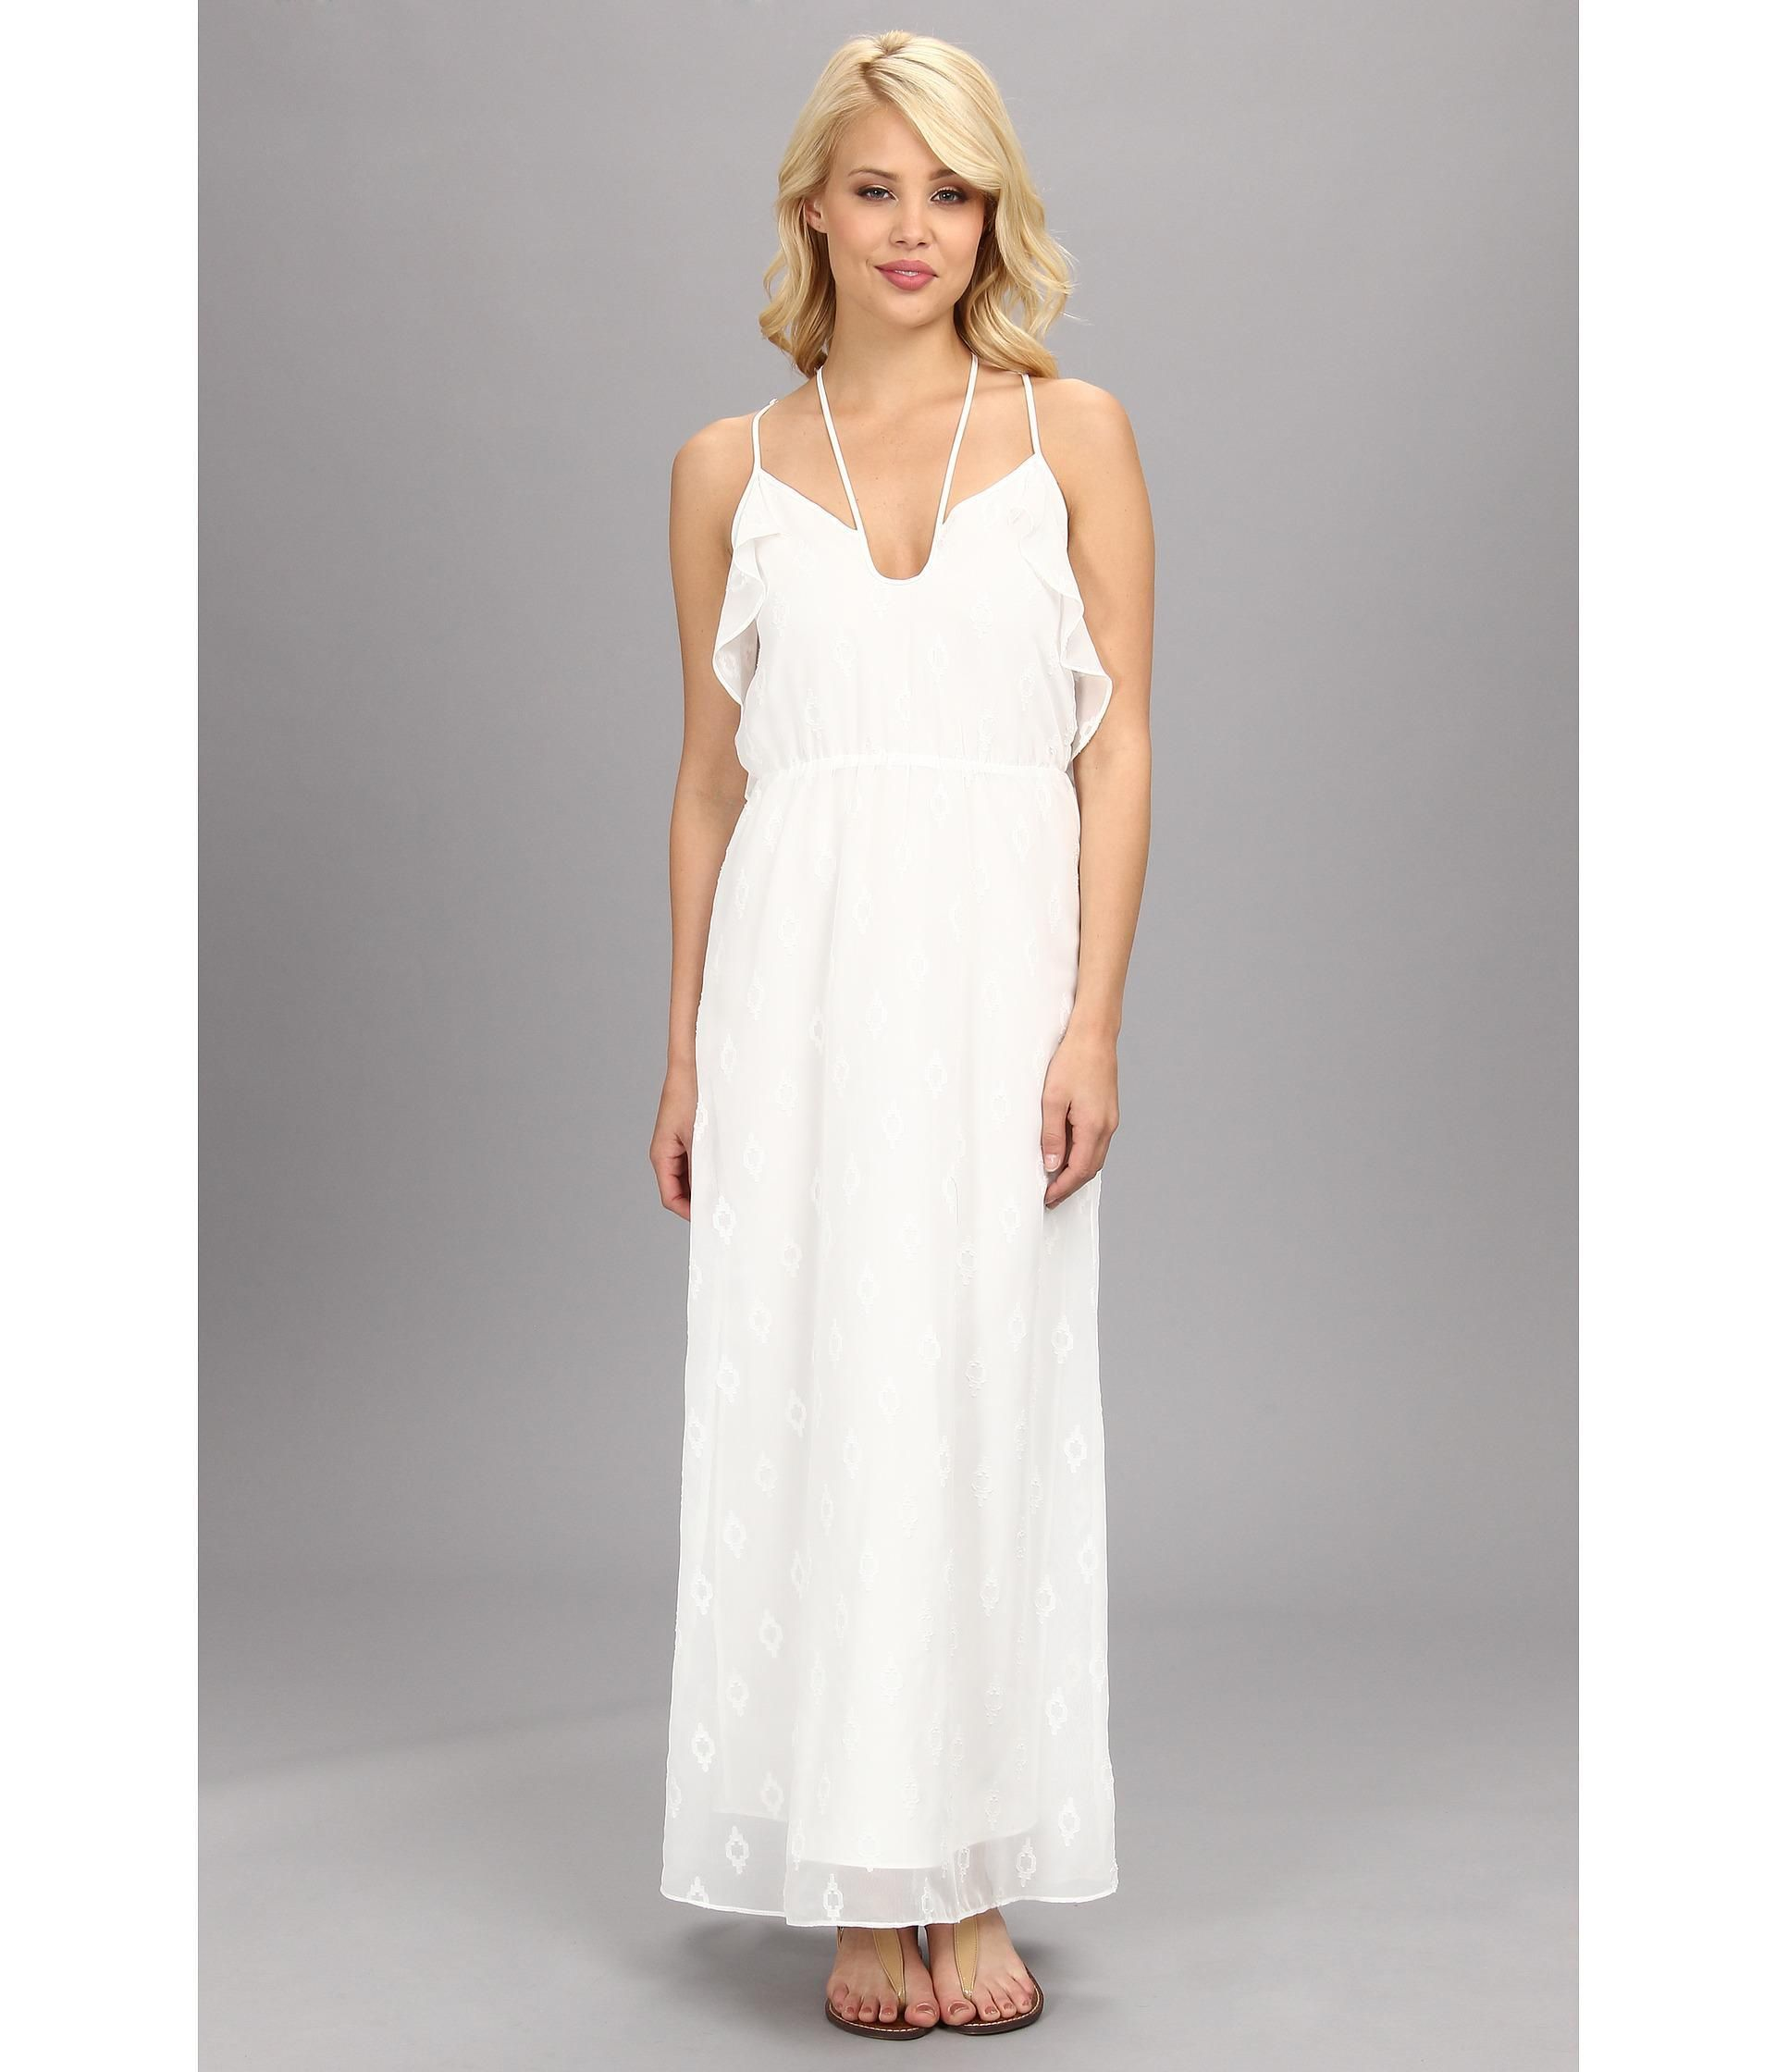 Dress for wedding party female  Youure a vision in white in this stunning DV by Dolce Vita dress